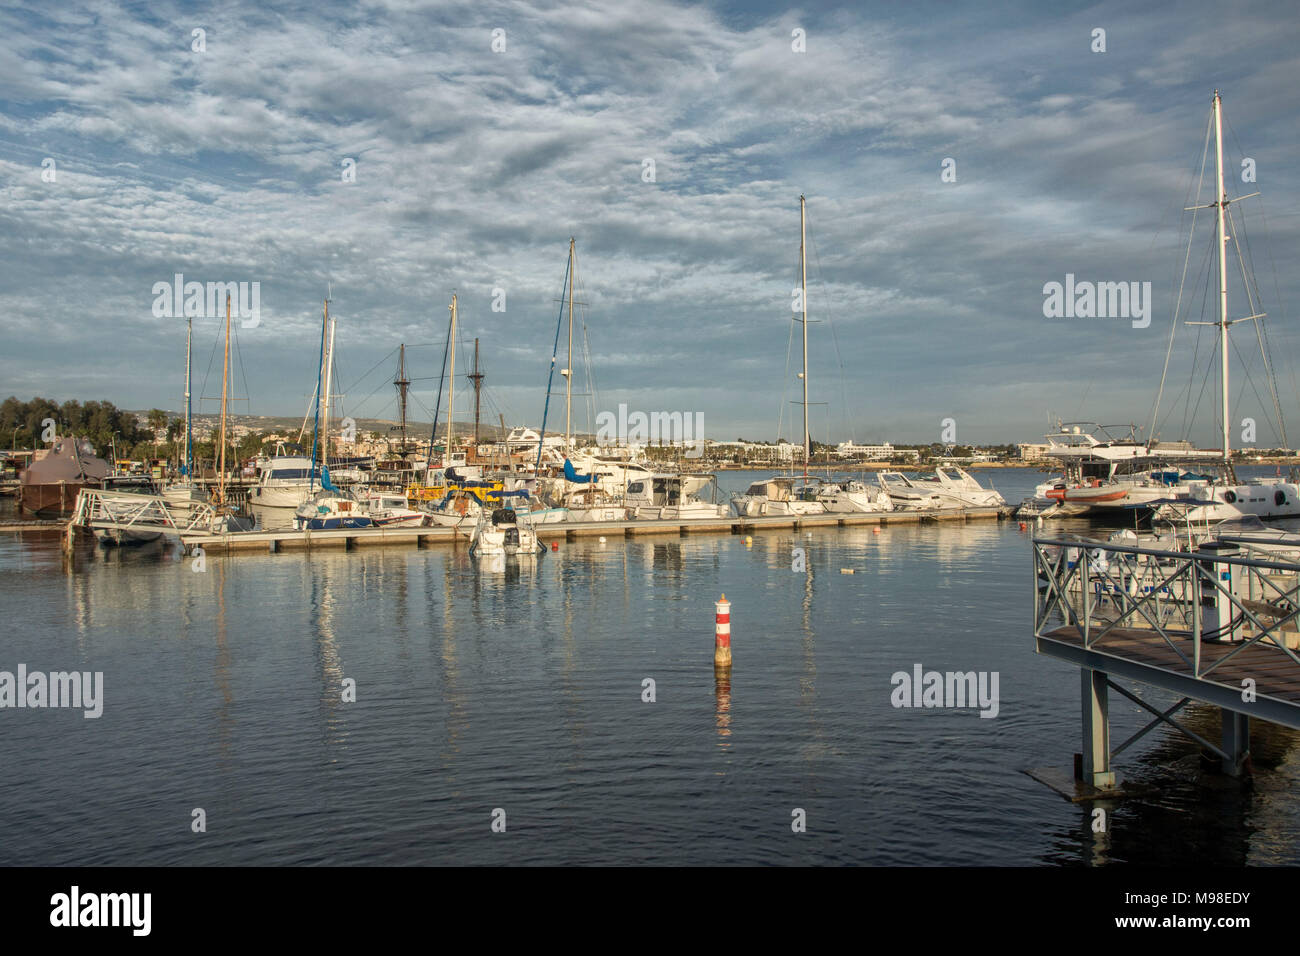 Boats moored in paphos harbour in the tourist area of paphos, kato paphos, cyprus, europe - Stock Image